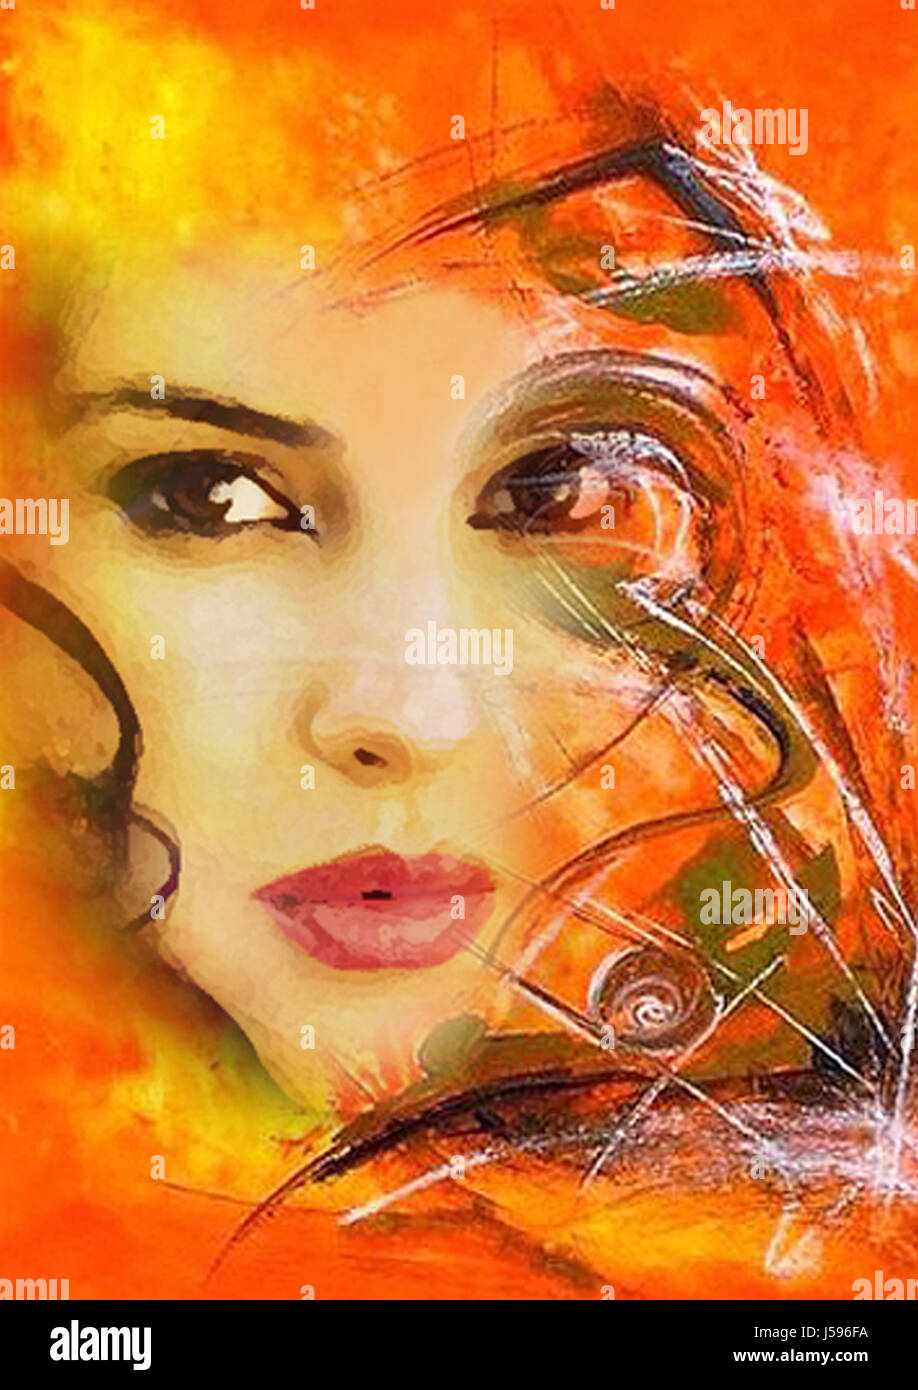 woman portrait painting fire conflagration flame abstract painted photo picture Stock Photo